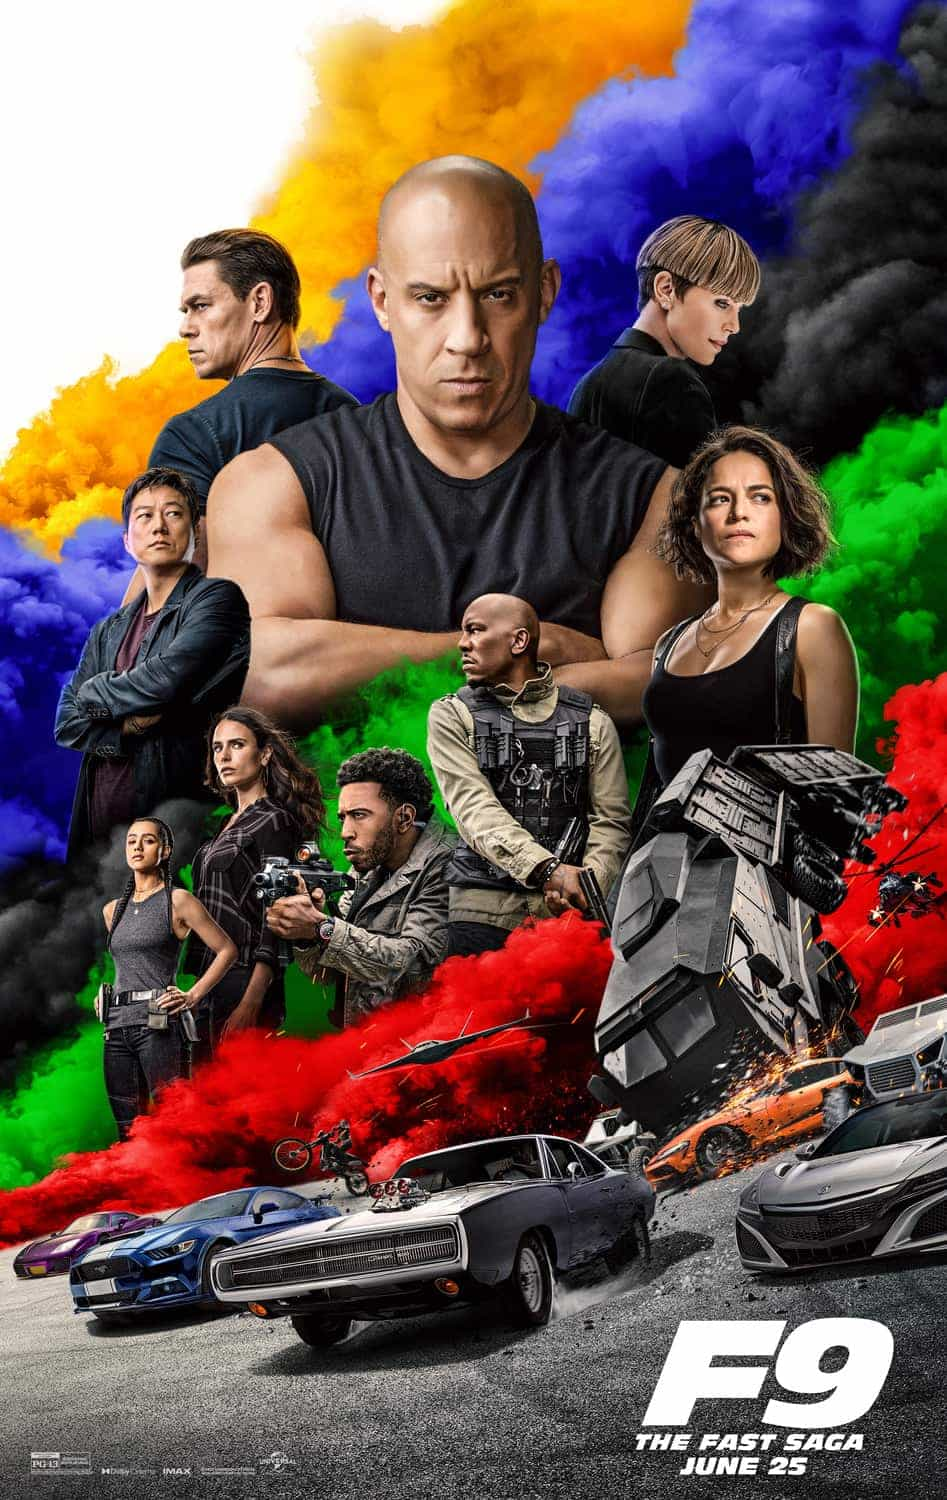 New Fast And Furious 9 trailer ahead of July 9th 2021 release date